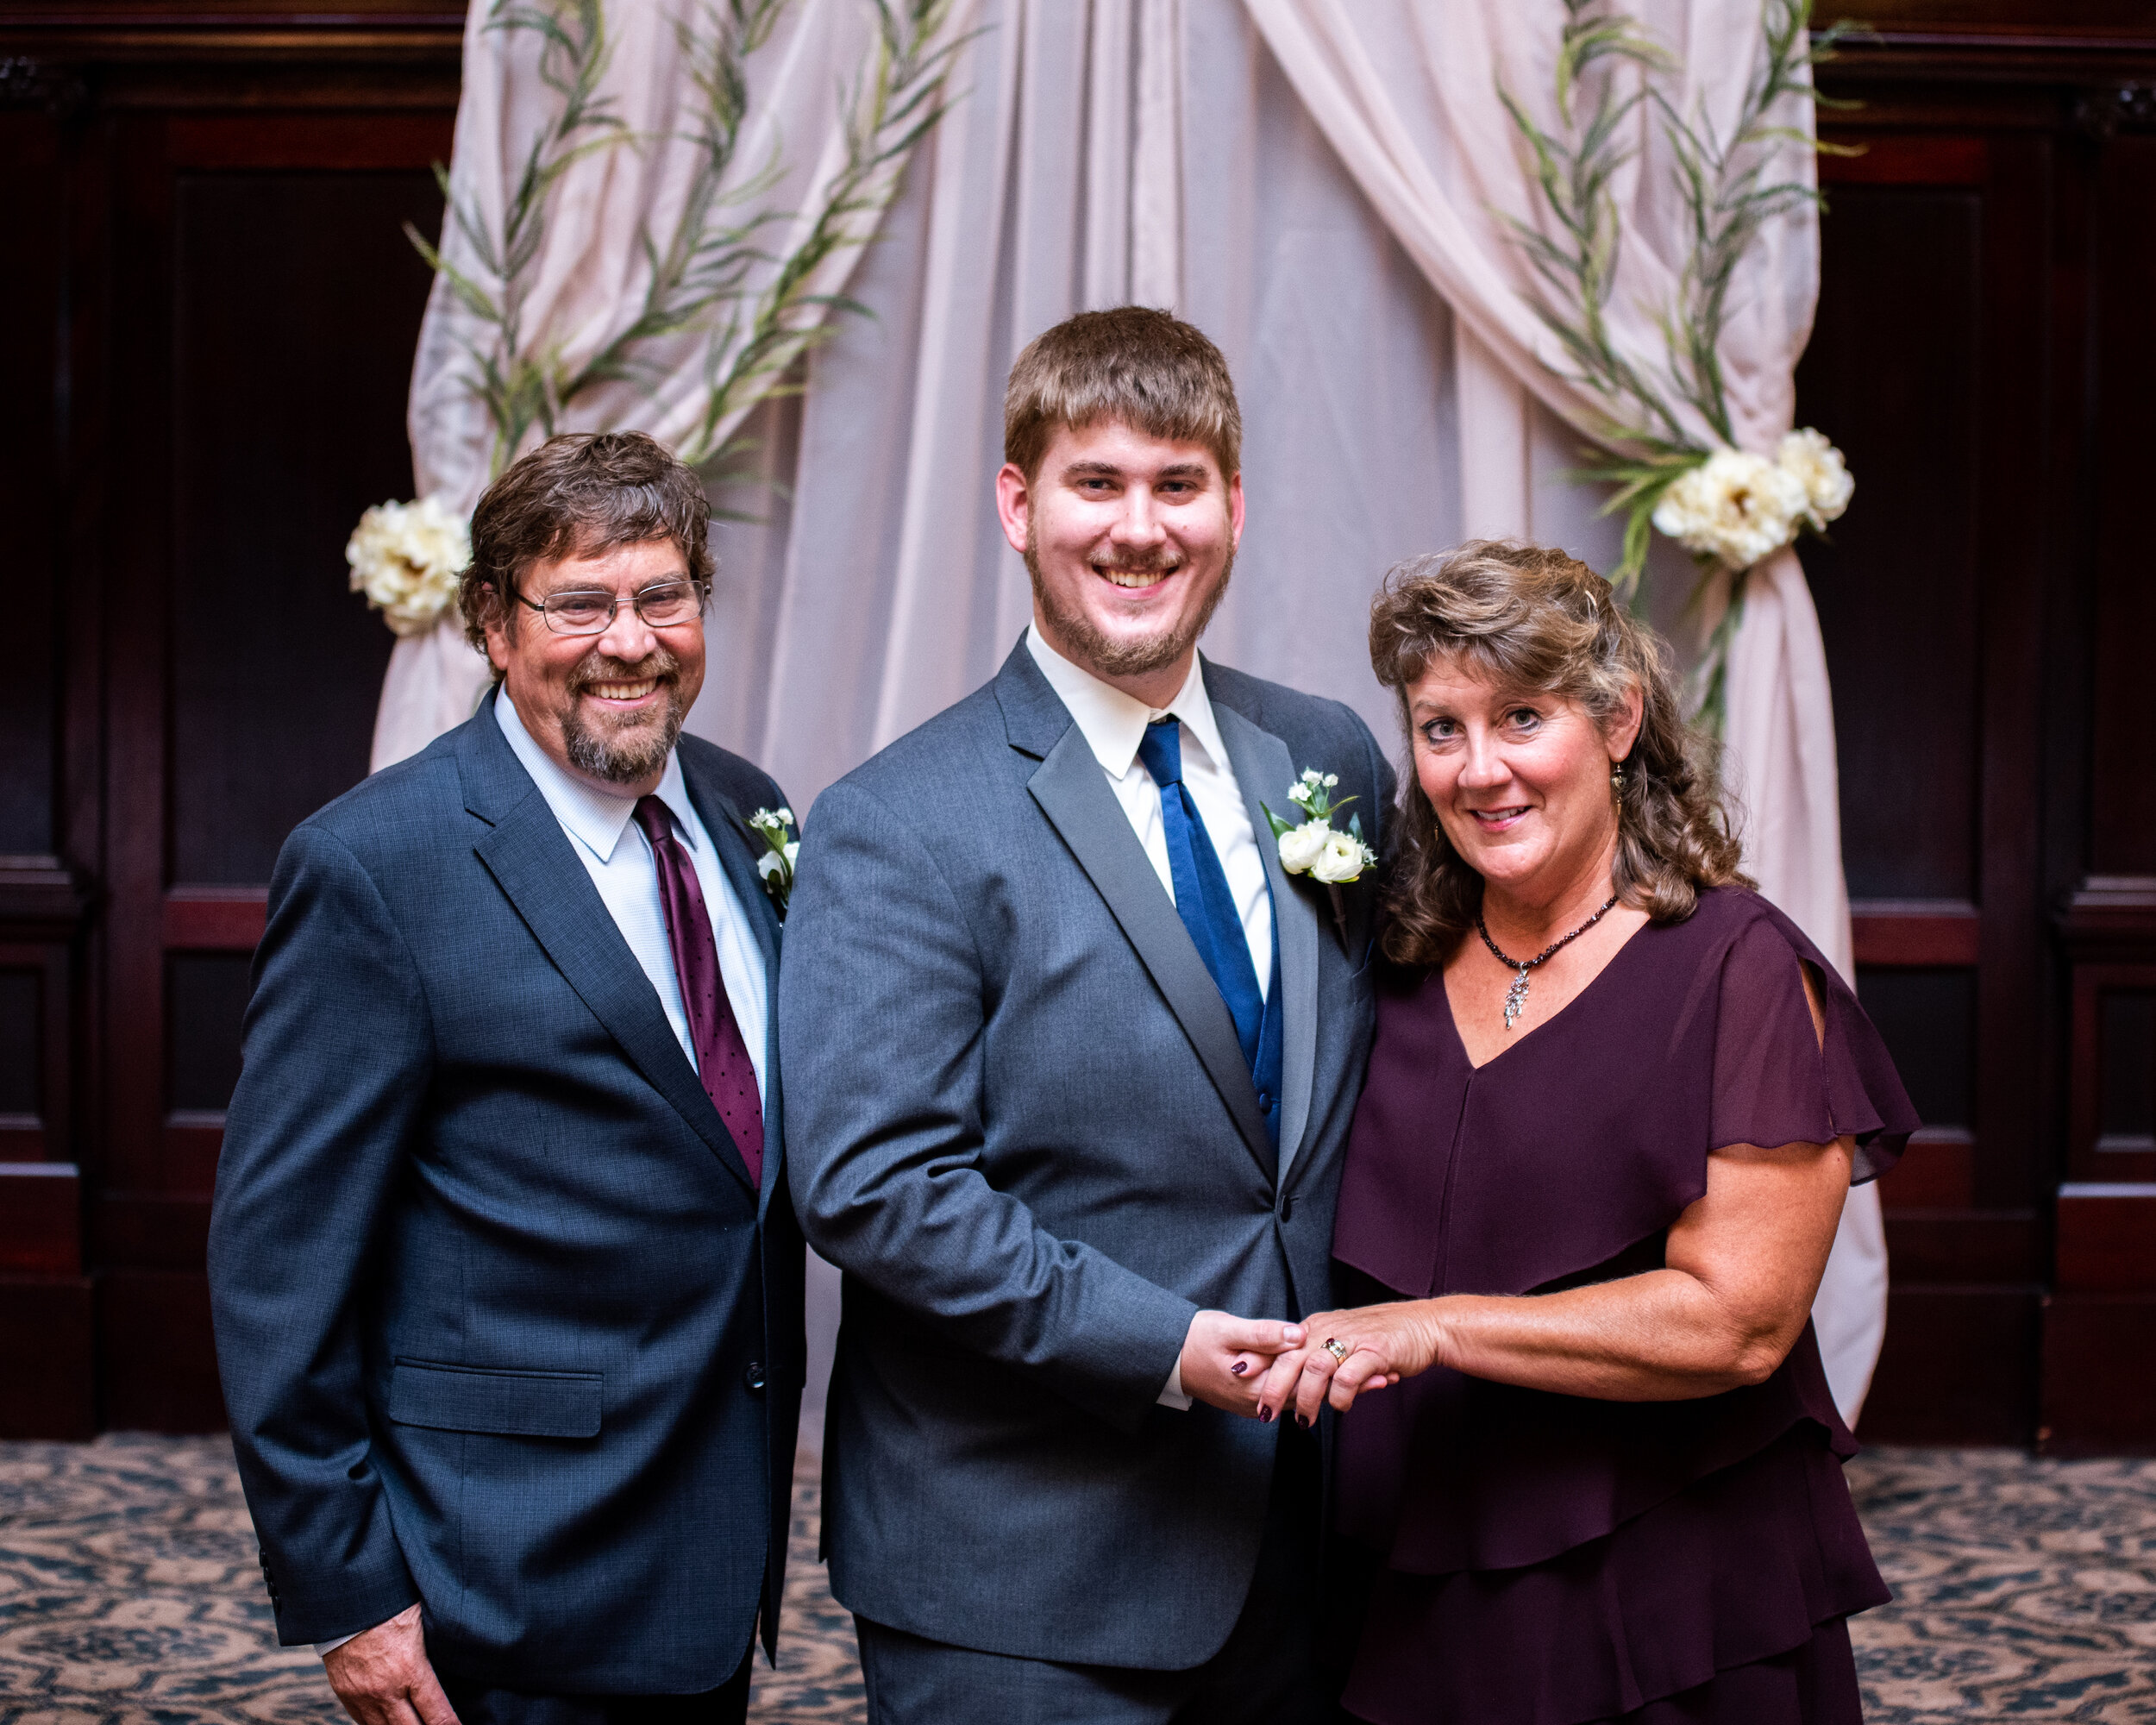 wedding (141 of 189).jpg